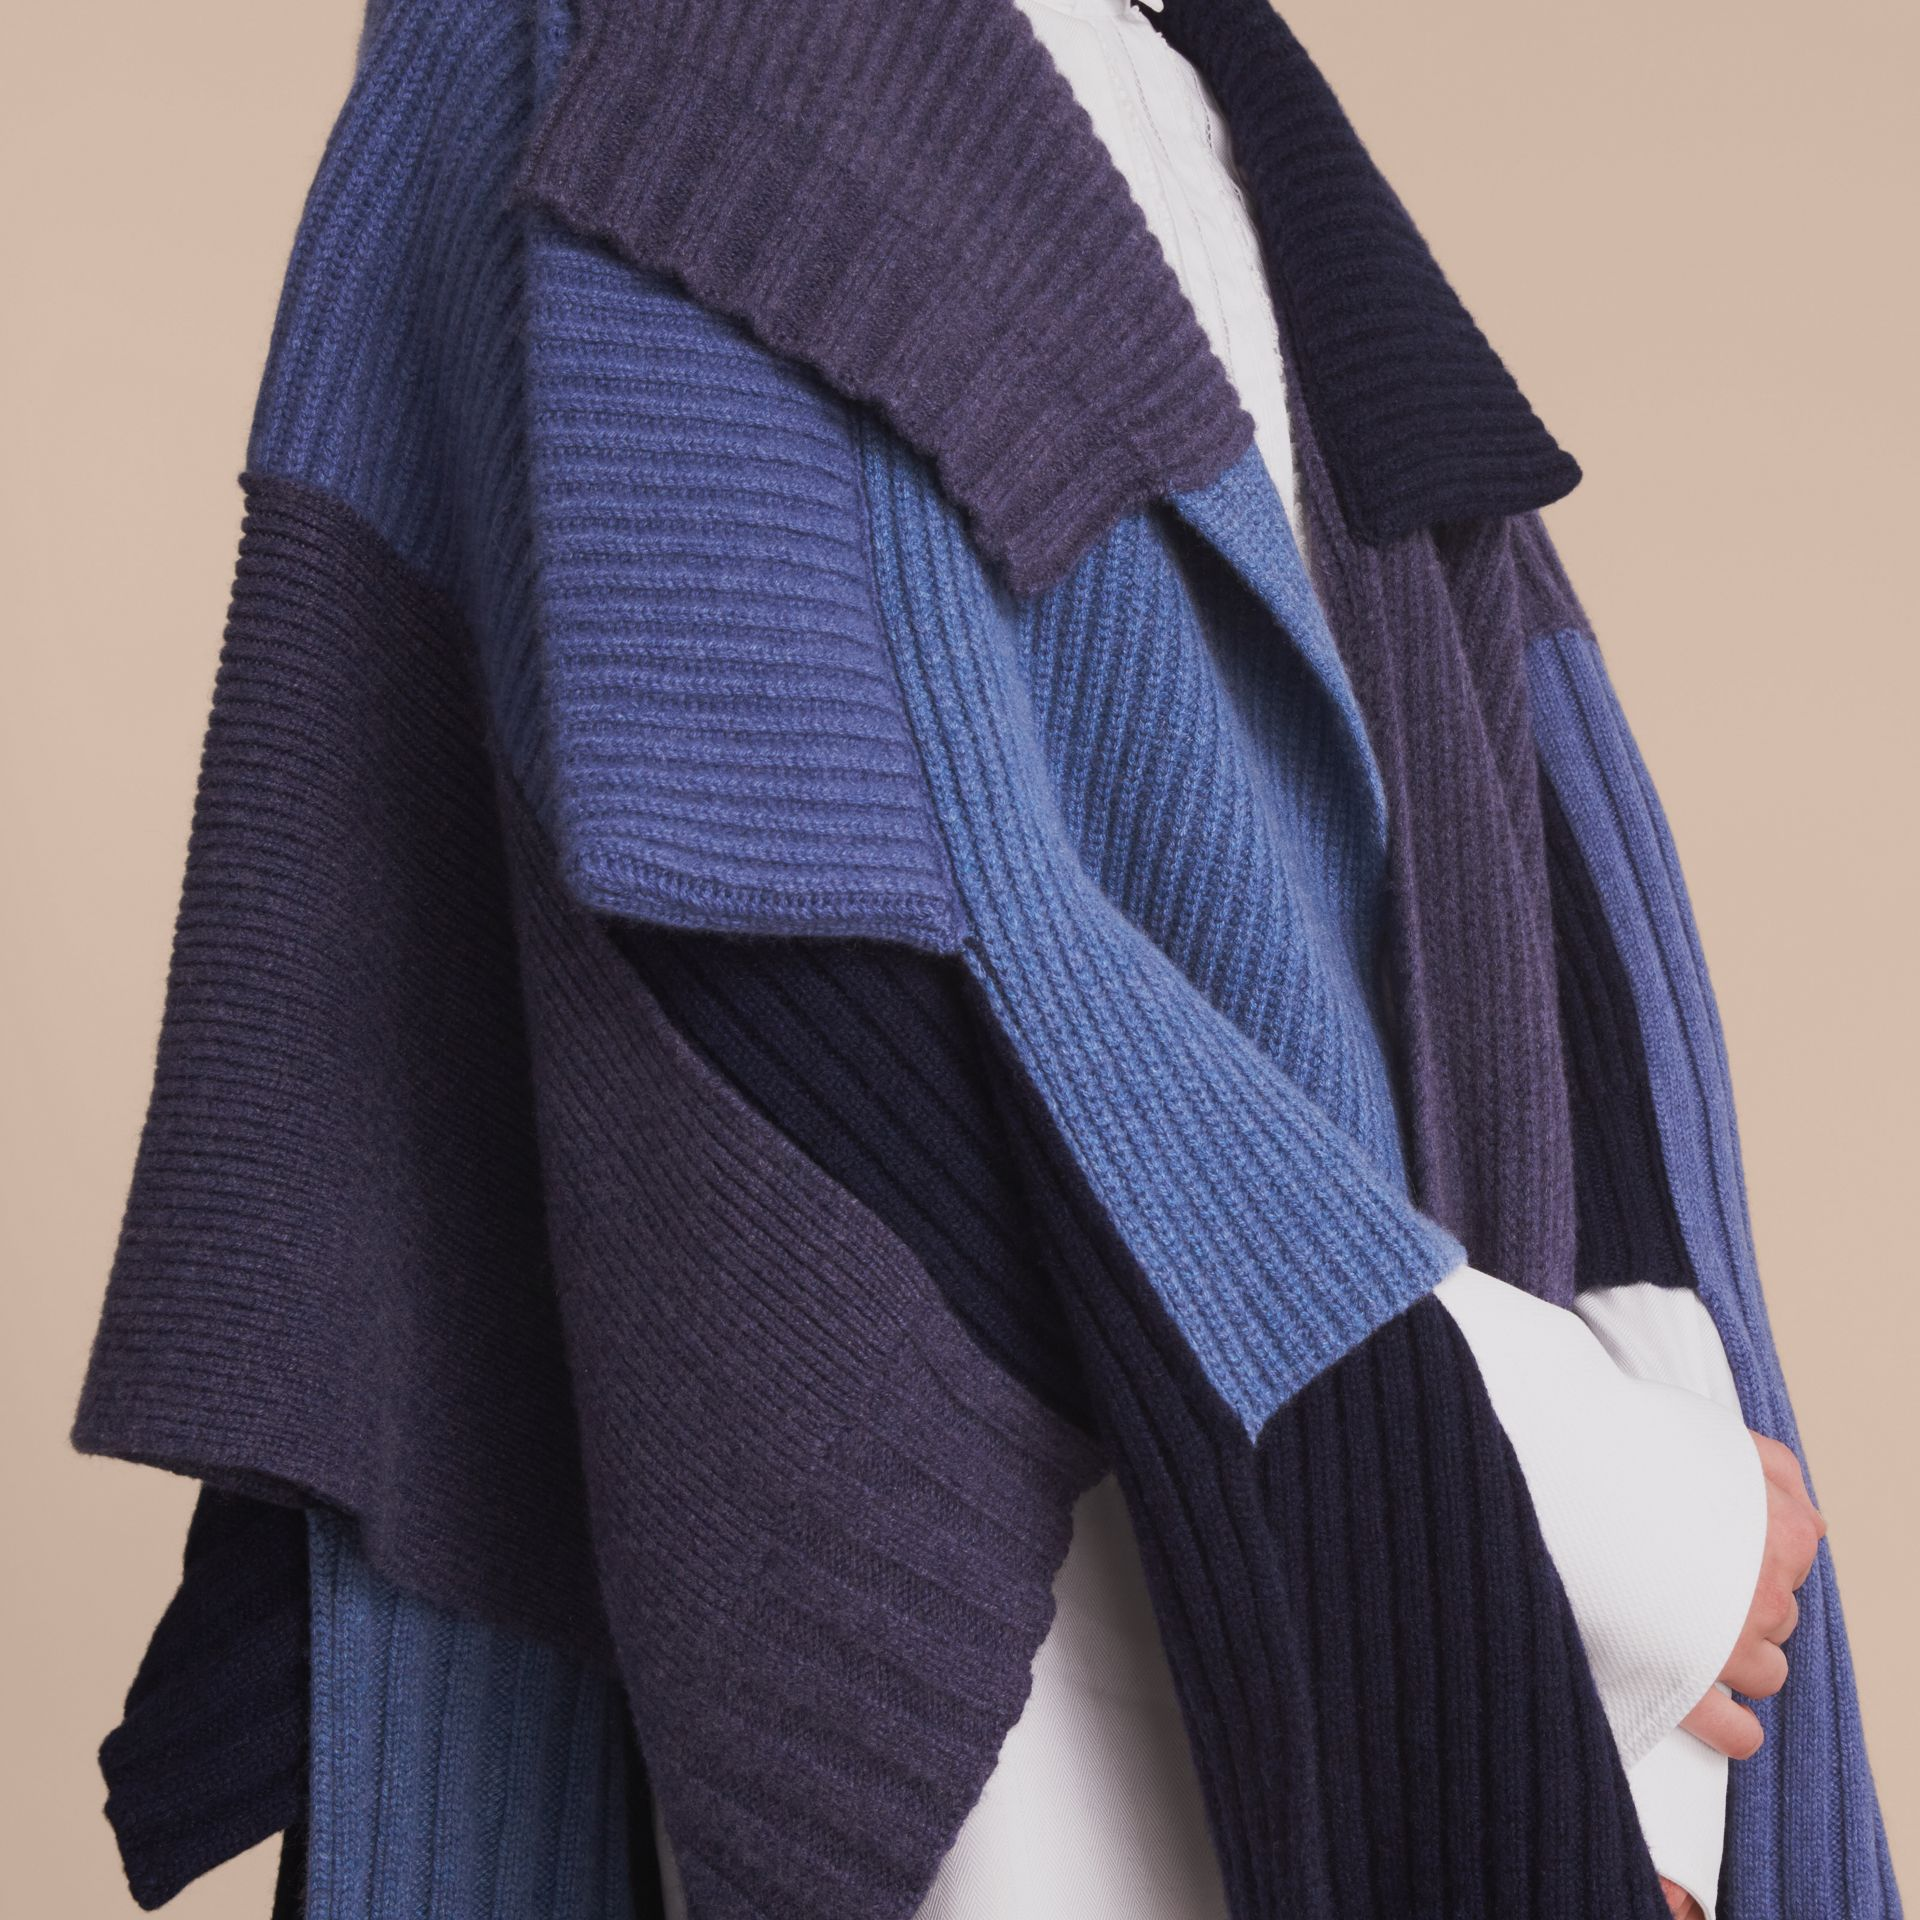 Wool Cashmere Patchwork Poncho in Carbon Blue - Women | Burberry United Kingdom - gallery image 5